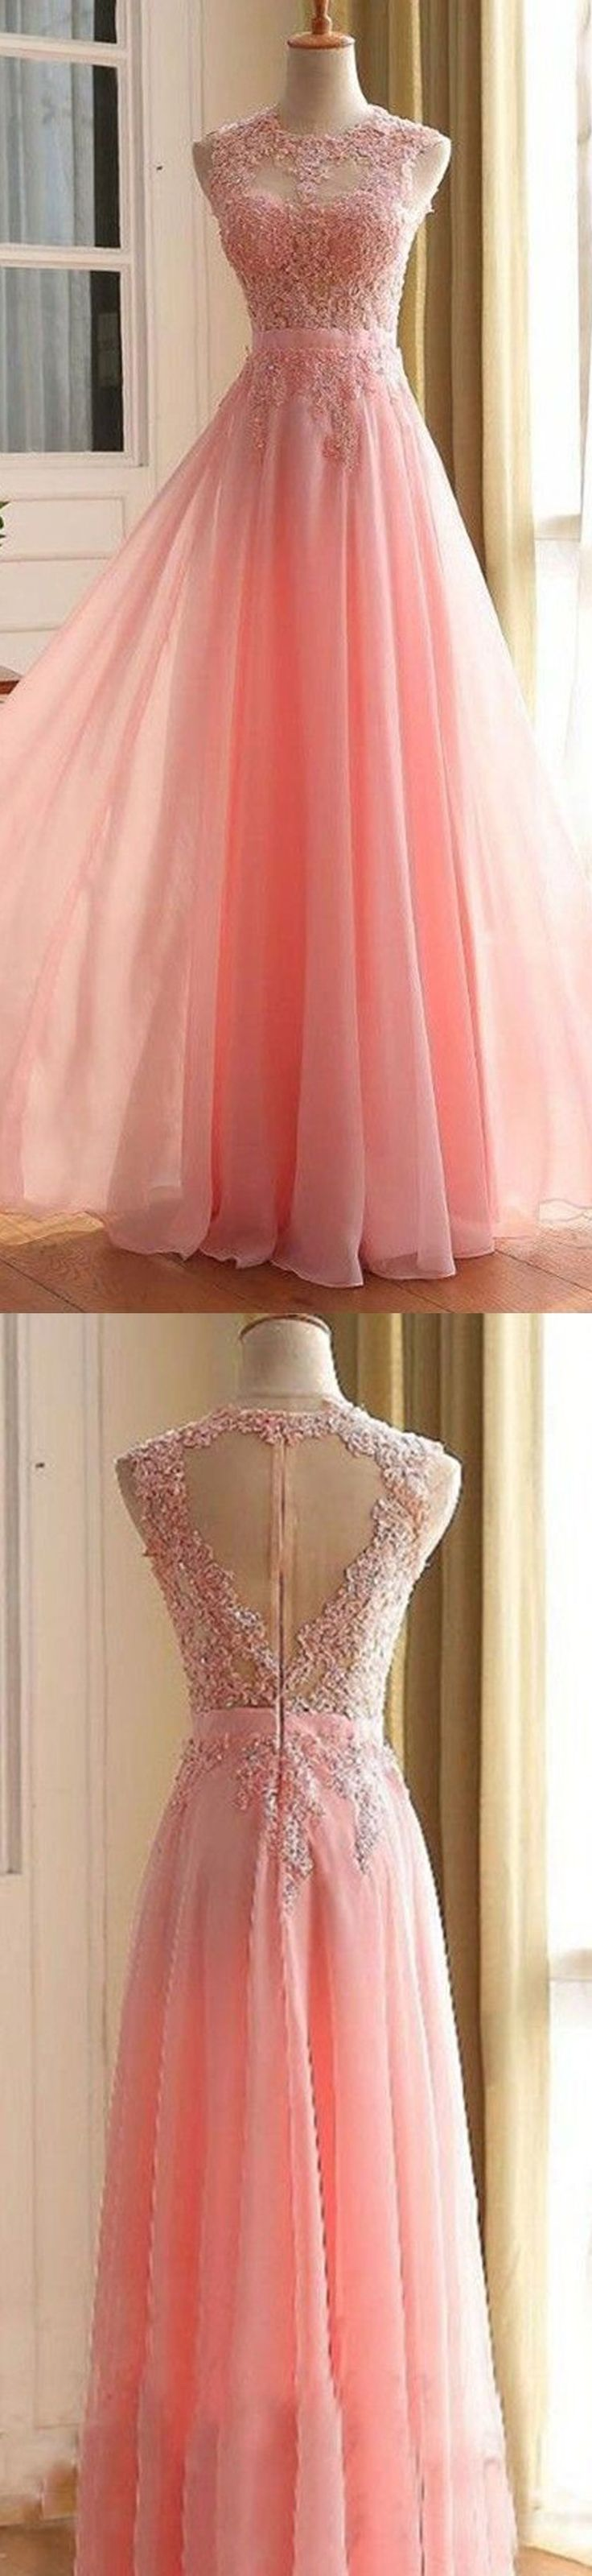 Nice Evening Dresses Charming Long Prom Dress, Appliques Pink Prom Dress,Elegant Prom Dress,Long Even... Check more at http://24myshop.ml/my-desires/evening-dresses-charming-long-prom-dress-appliques-pink-prom-dresselegant-prom-dresslong-even/